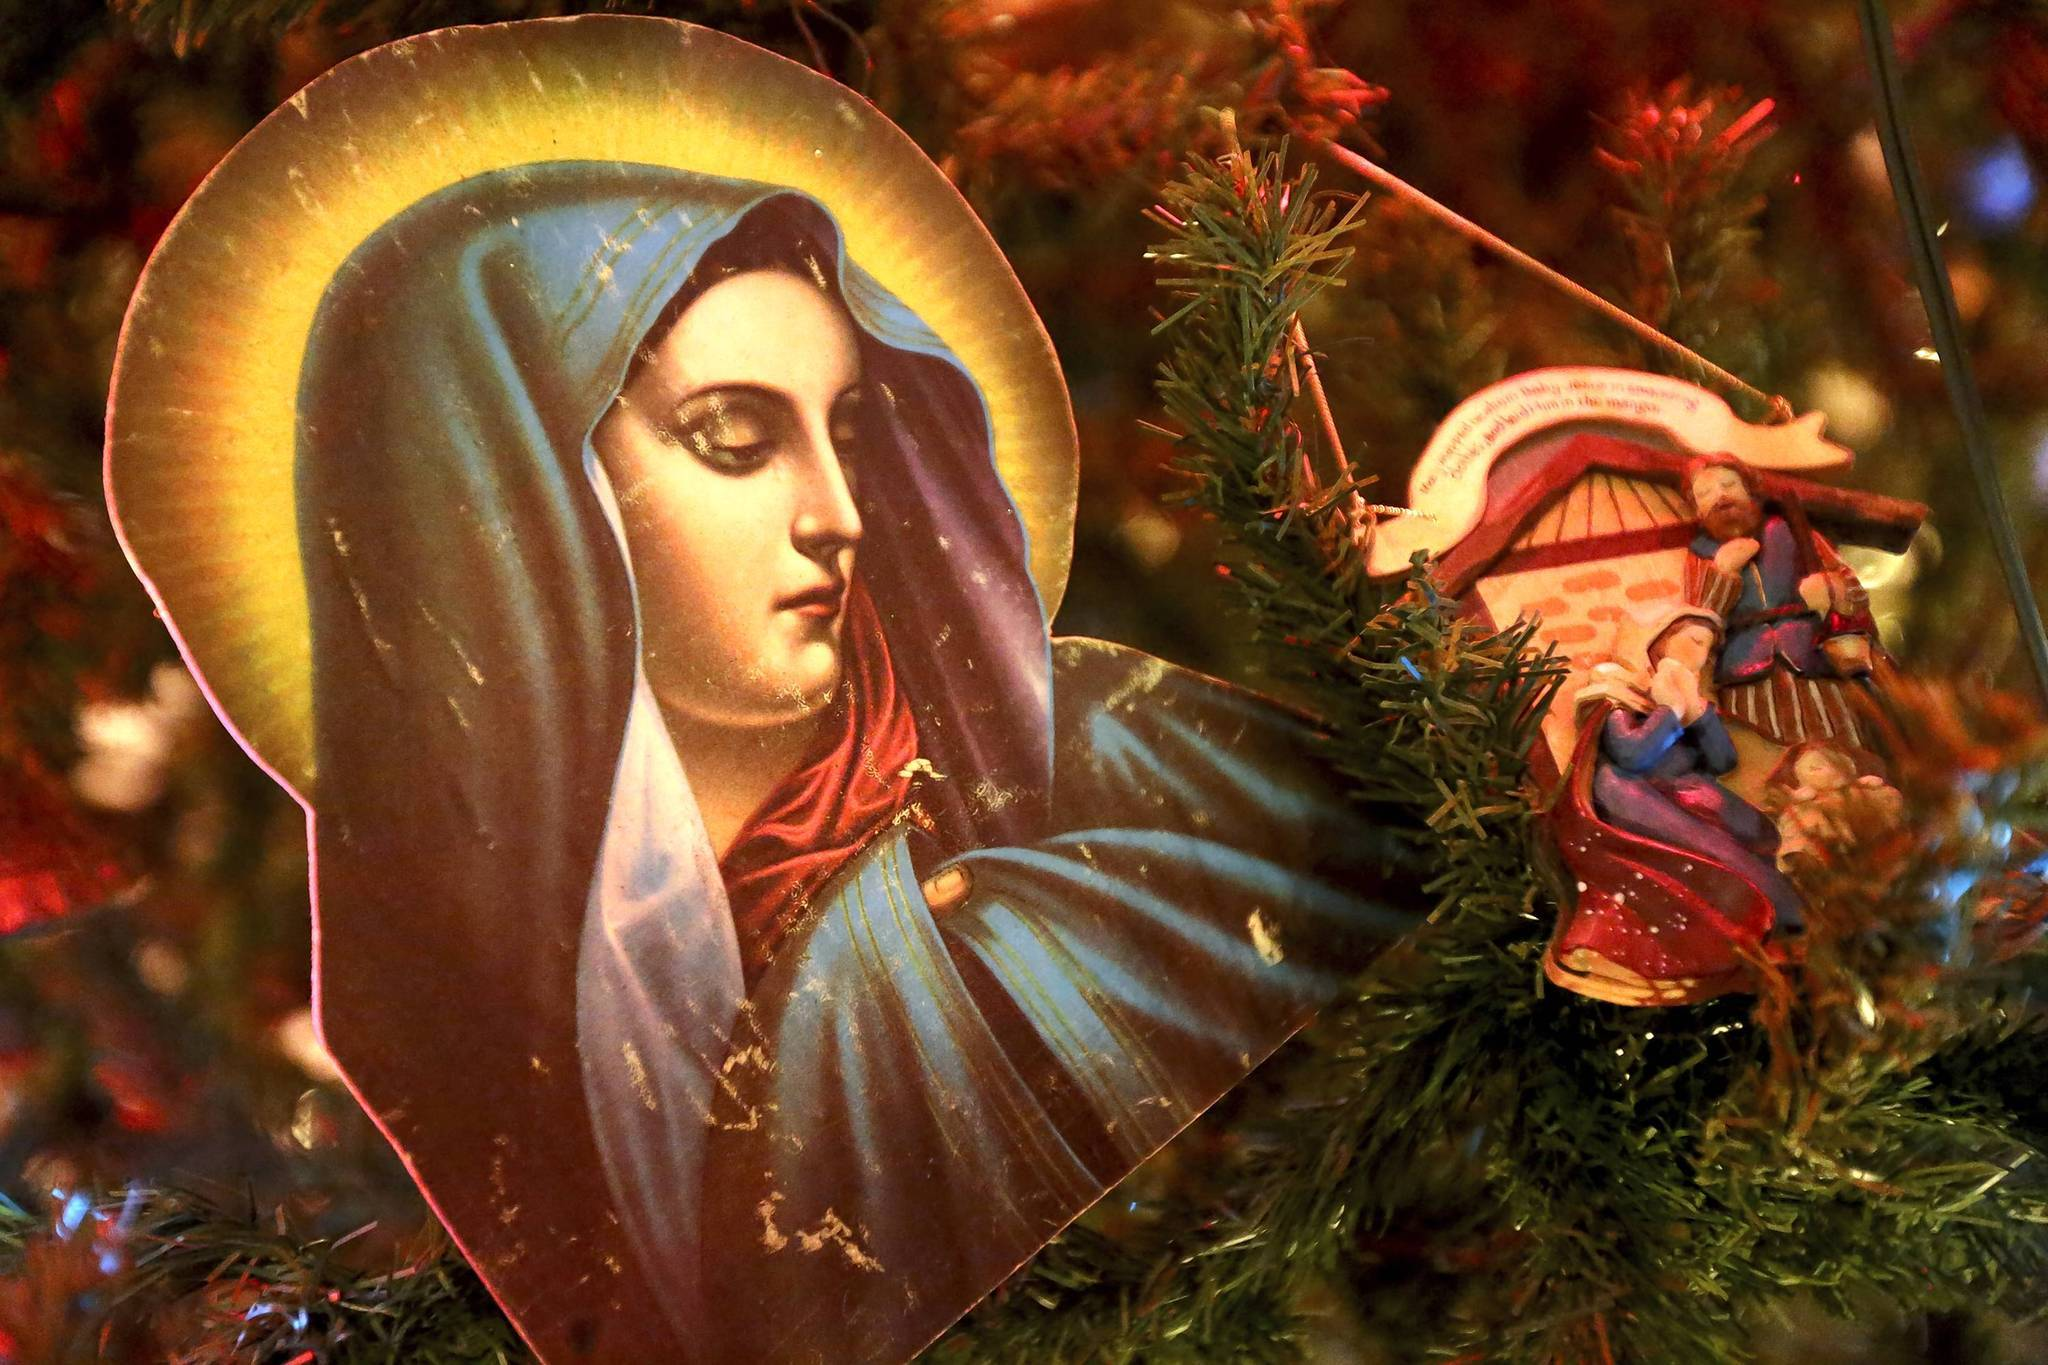 Religious icons adorn a Christmas tree representing Egypt's participation on display at a Museum of Science and Industry exhibition.